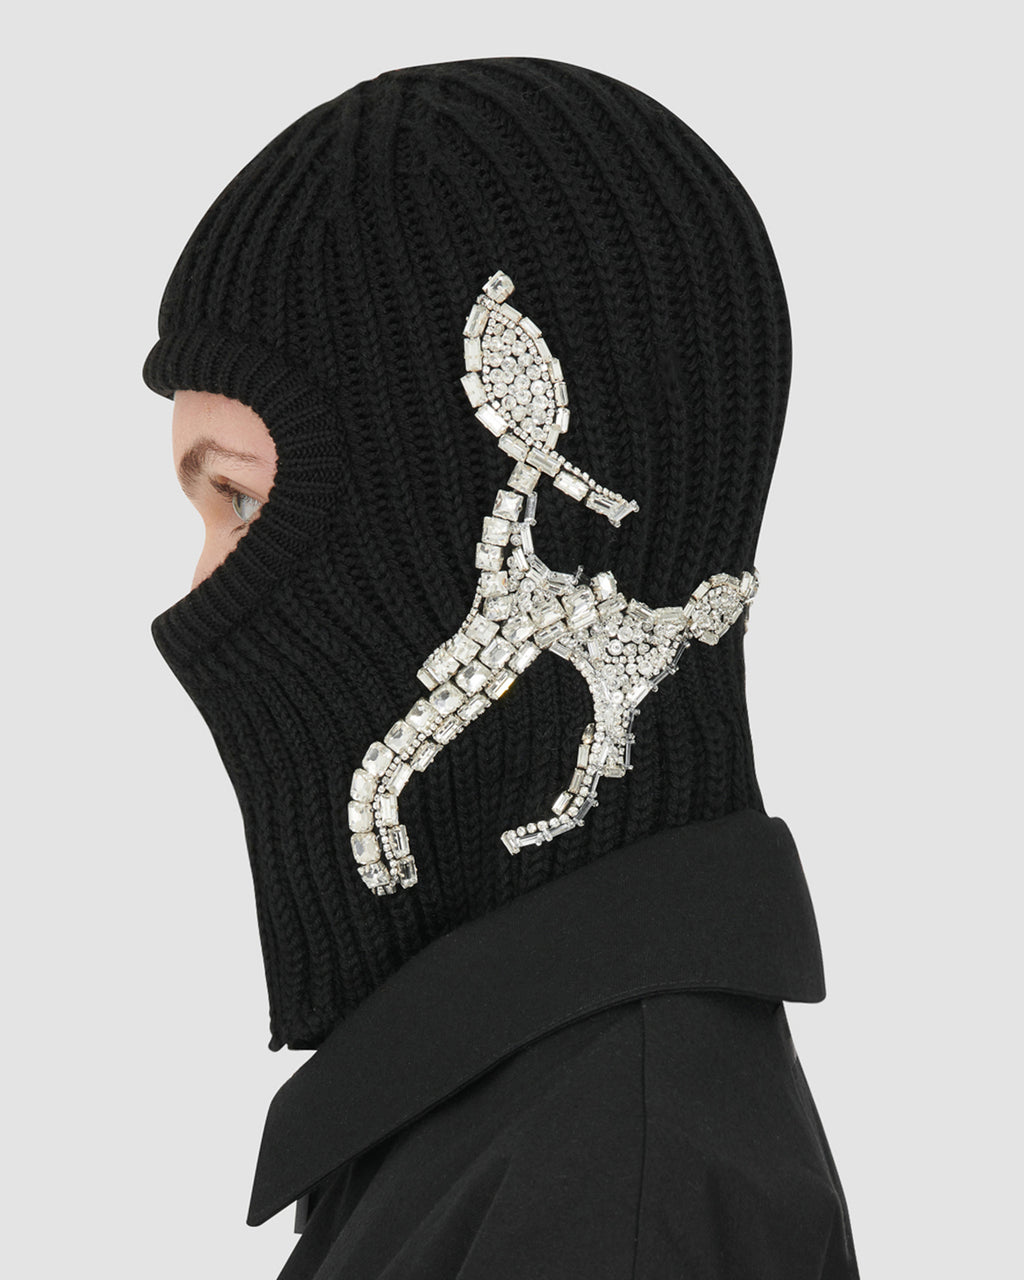 BALACLAVA WITH DIAMANTI EXCLUSIVE MADE TO ORDER